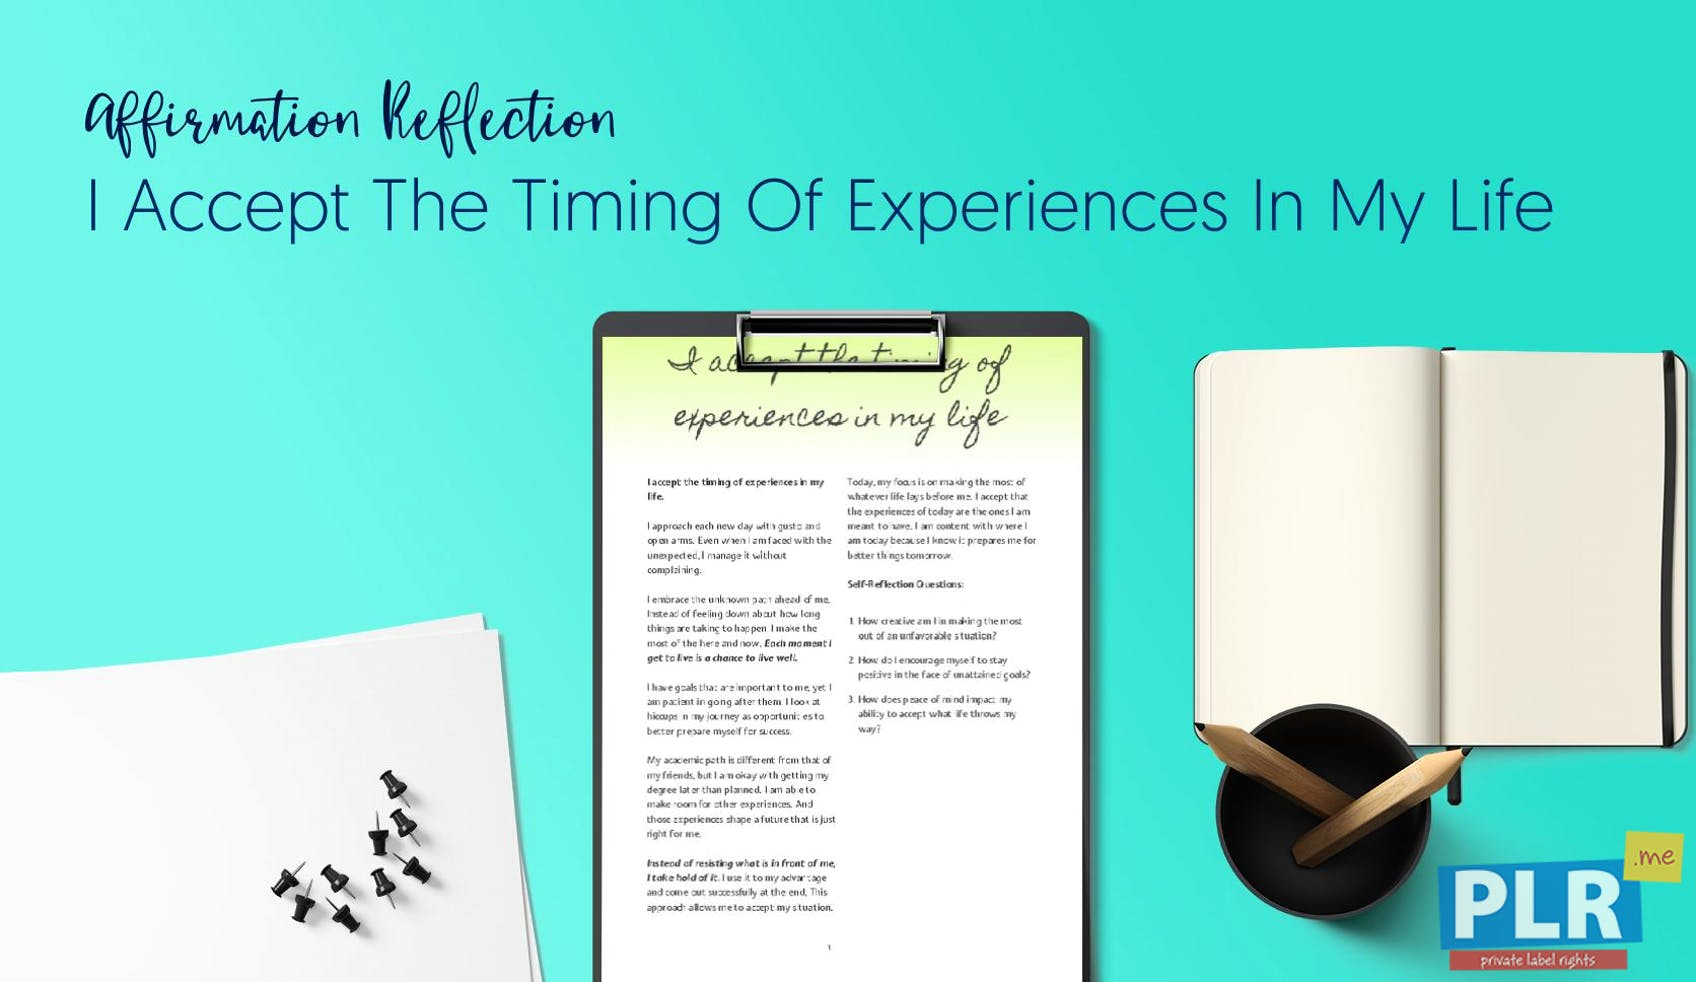 I Accept The Timing Of Experiences In My Life